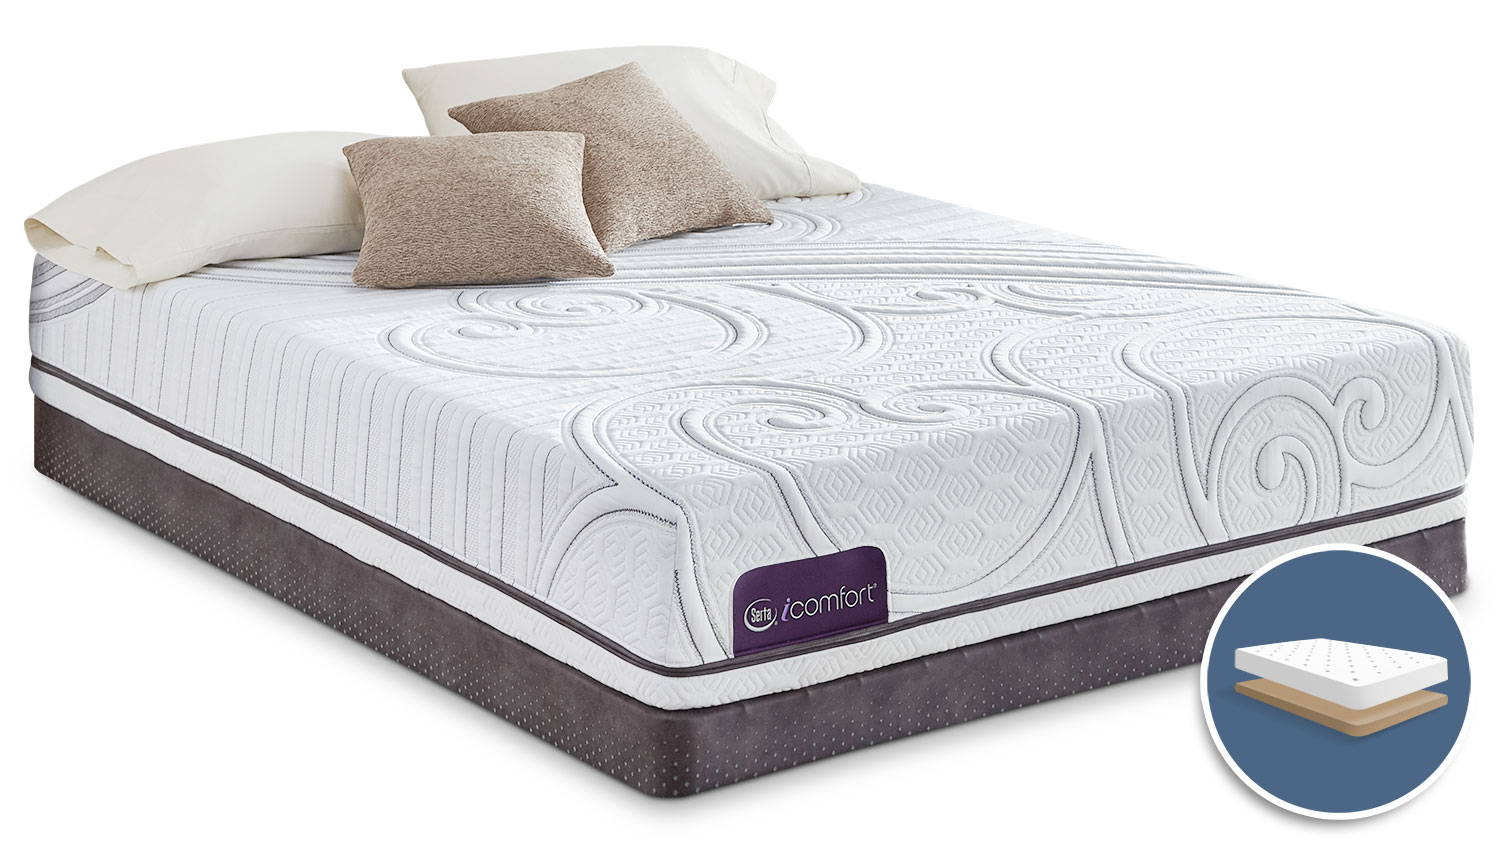 Serta iComfort Intellectual 2 Firm Full Low-Profile Mattress Set